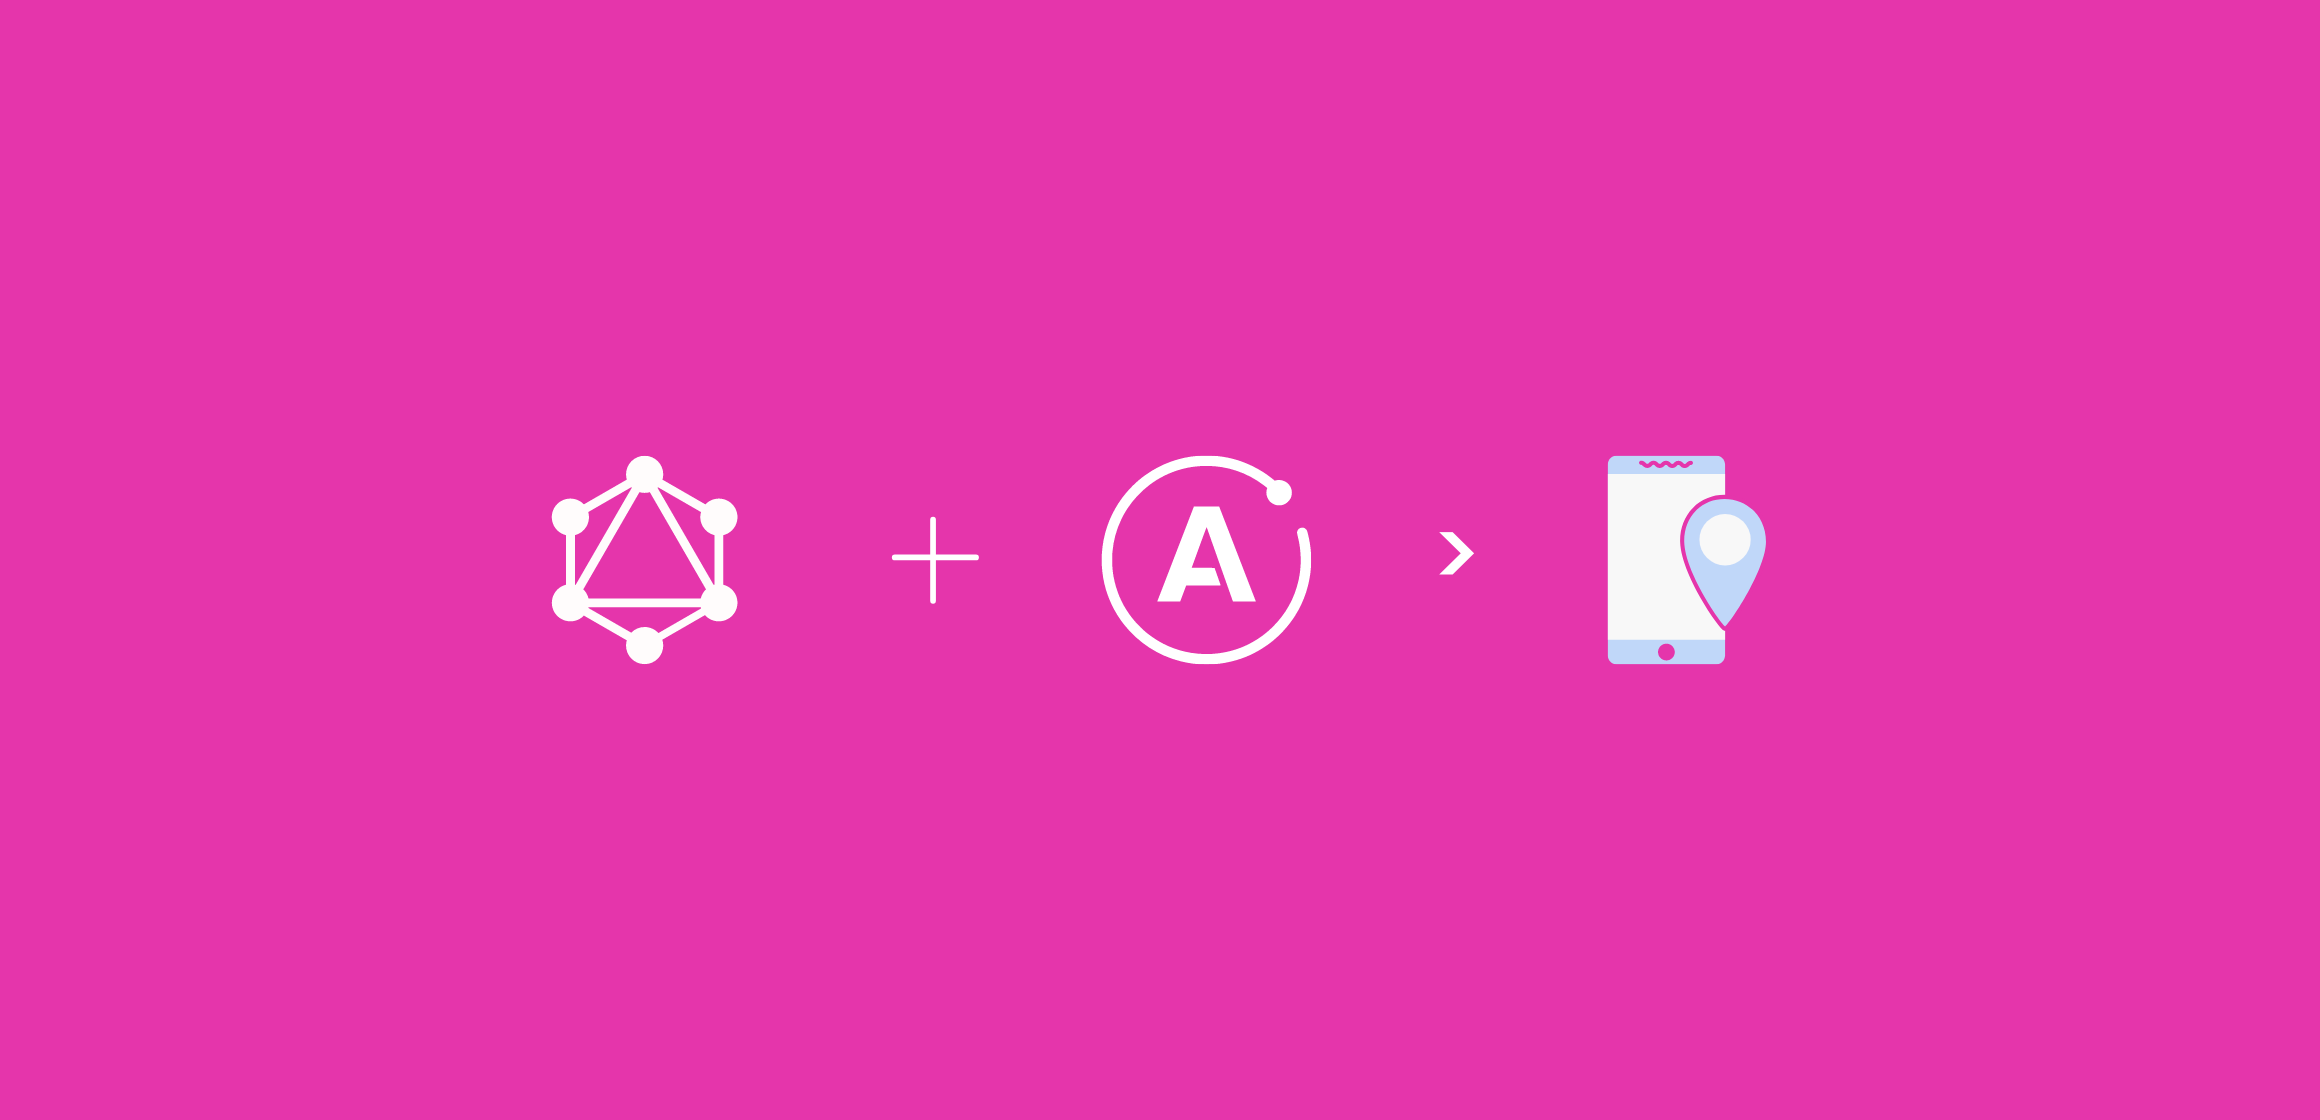 GraphQL Subscriptions & Apollo Client for real-time tracking app